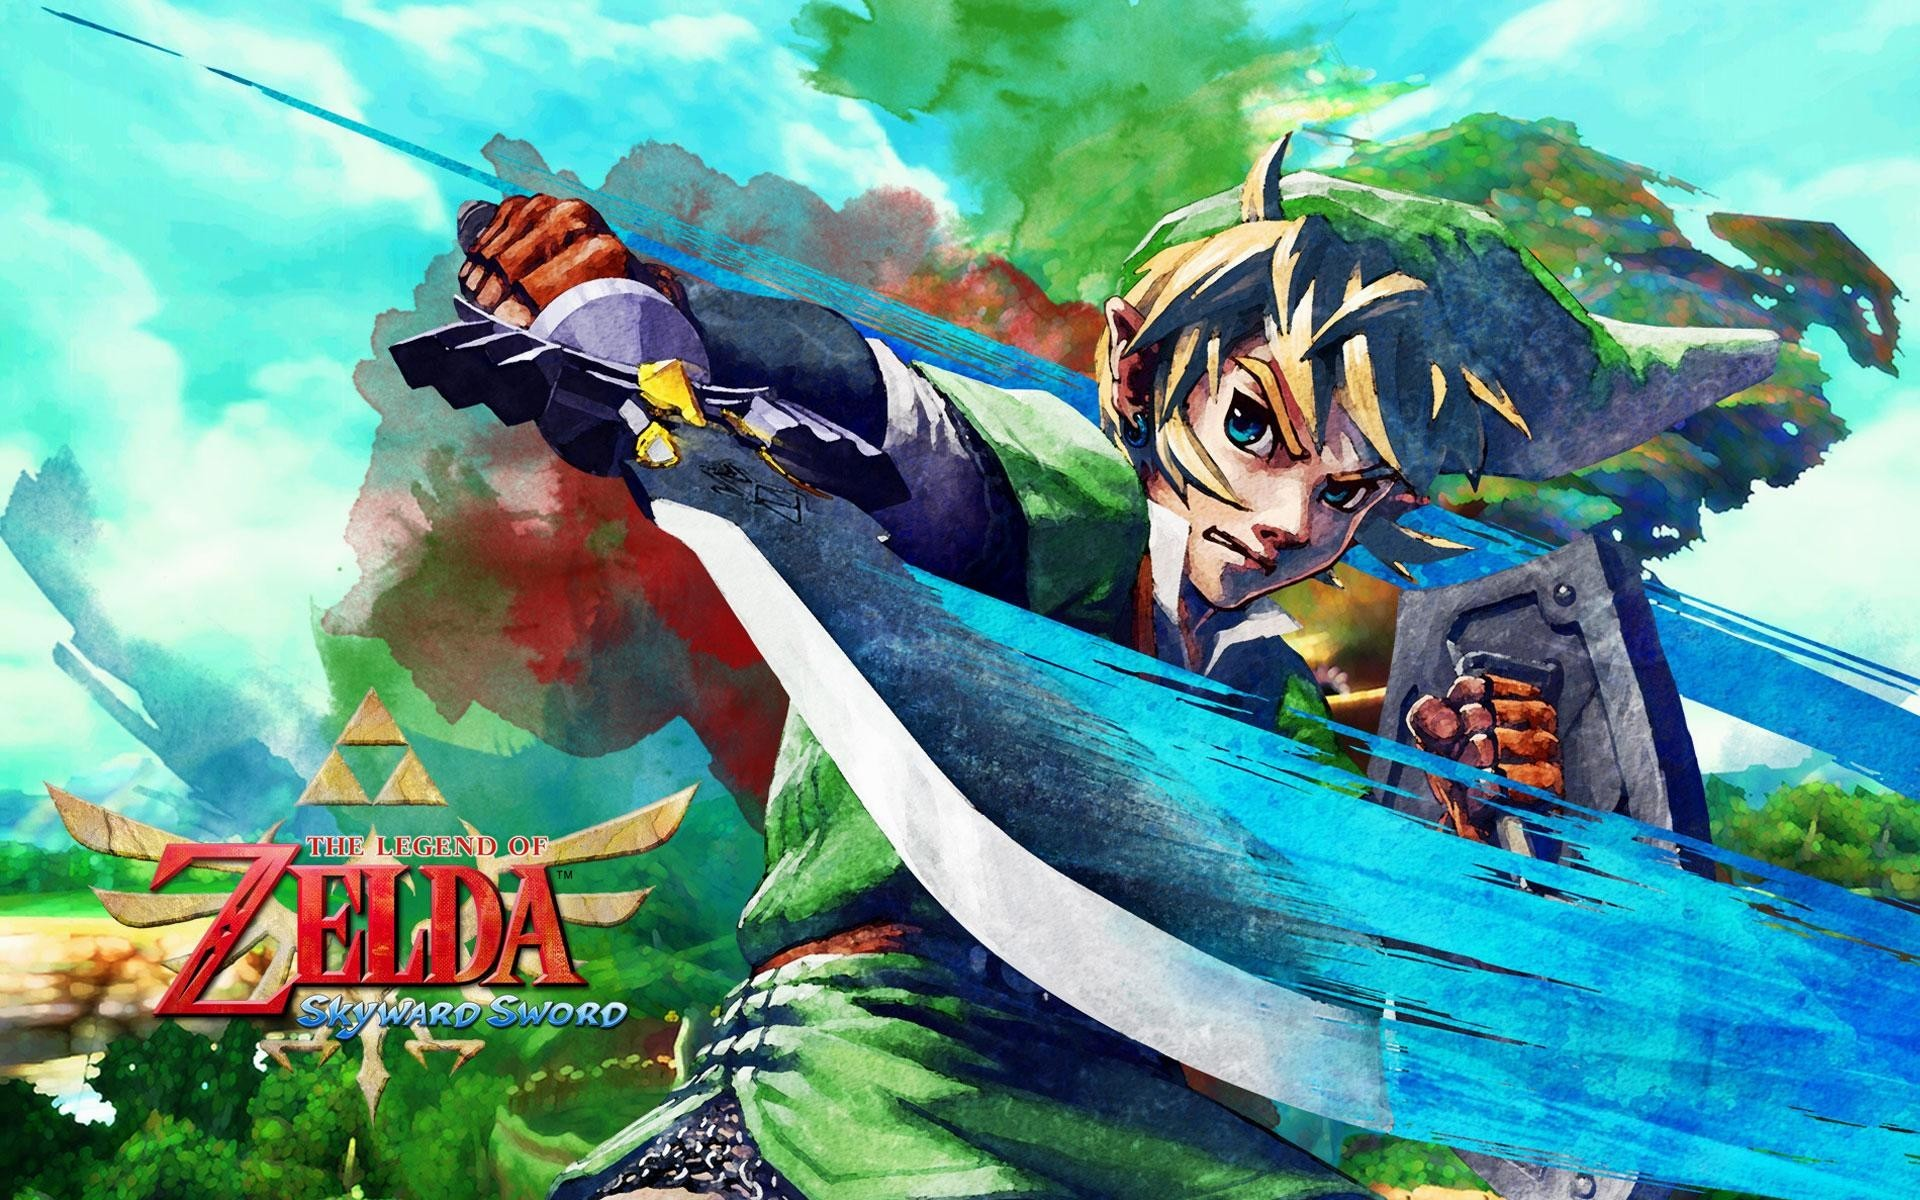 1920x1200  Zelda-skyward-sword-wallpaper-HD-1080p